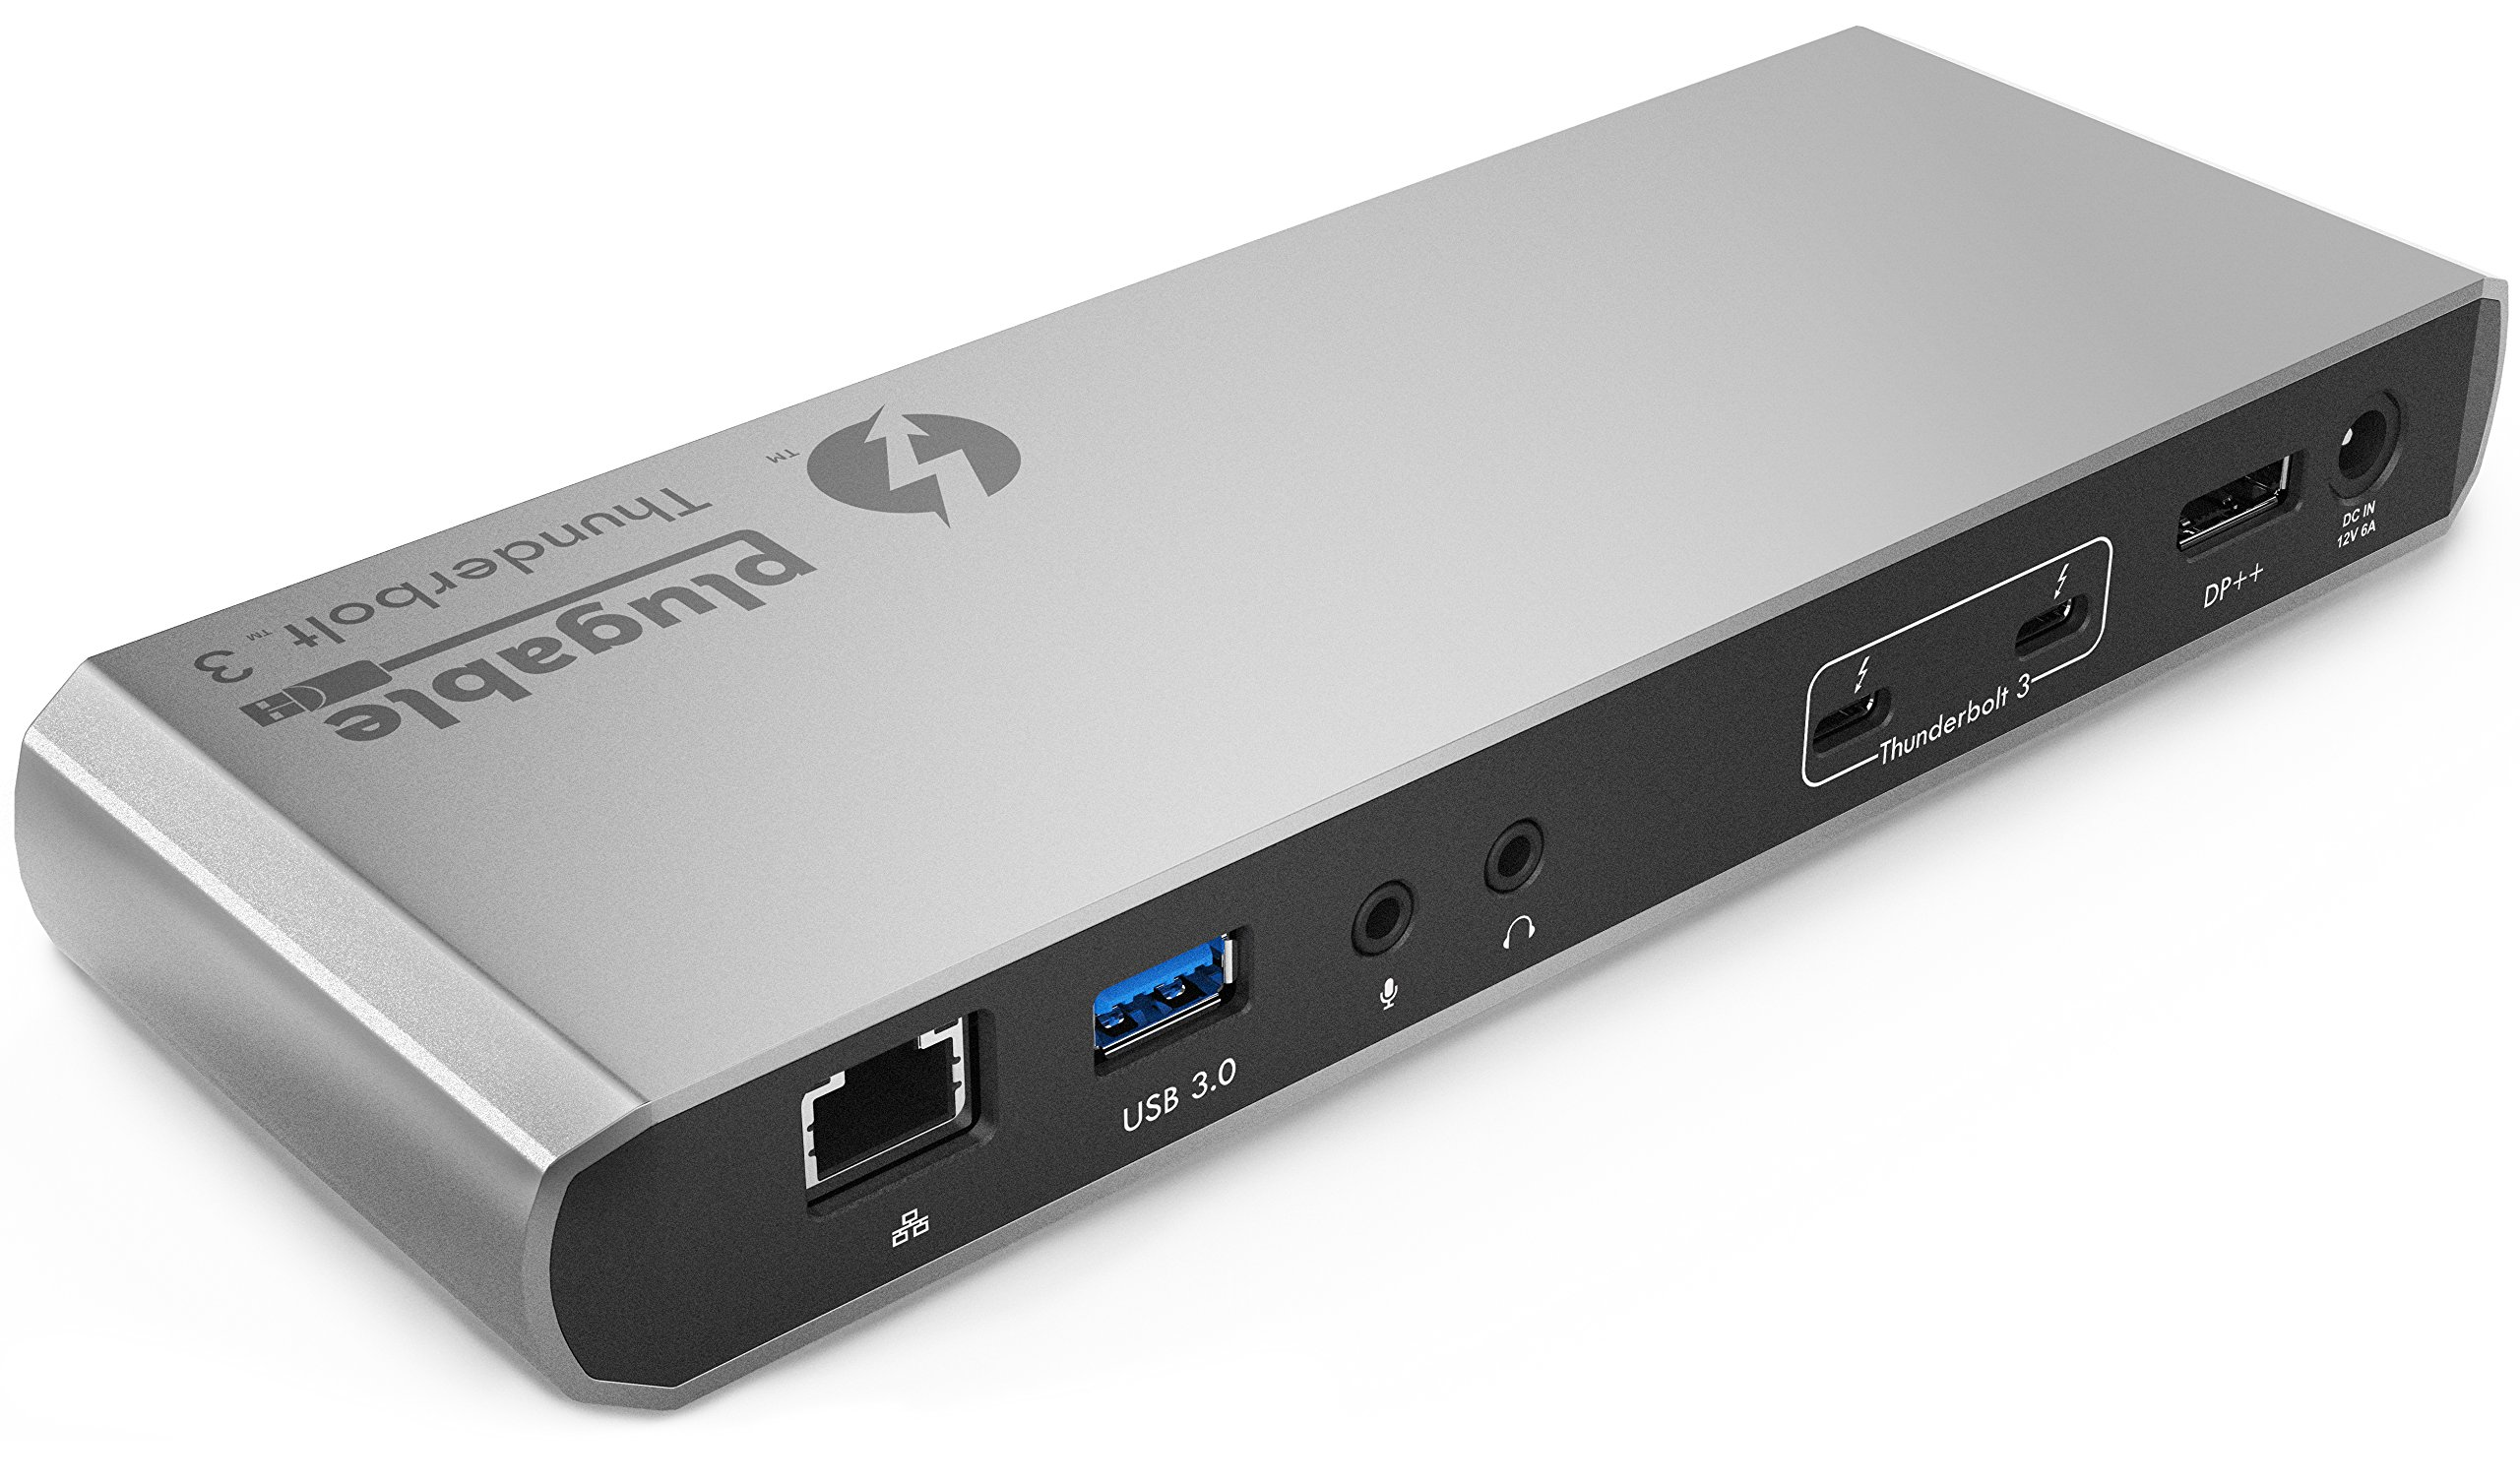 Plugable Thunderbolt 3 Docking Station for MacBook Pro 2016/2017 and Other Compatible Laptops (Supports 4K DisplayPort or HDMI Display, Gigabit Ethernet, Audio, 3 USB Ports. No Host Charging)